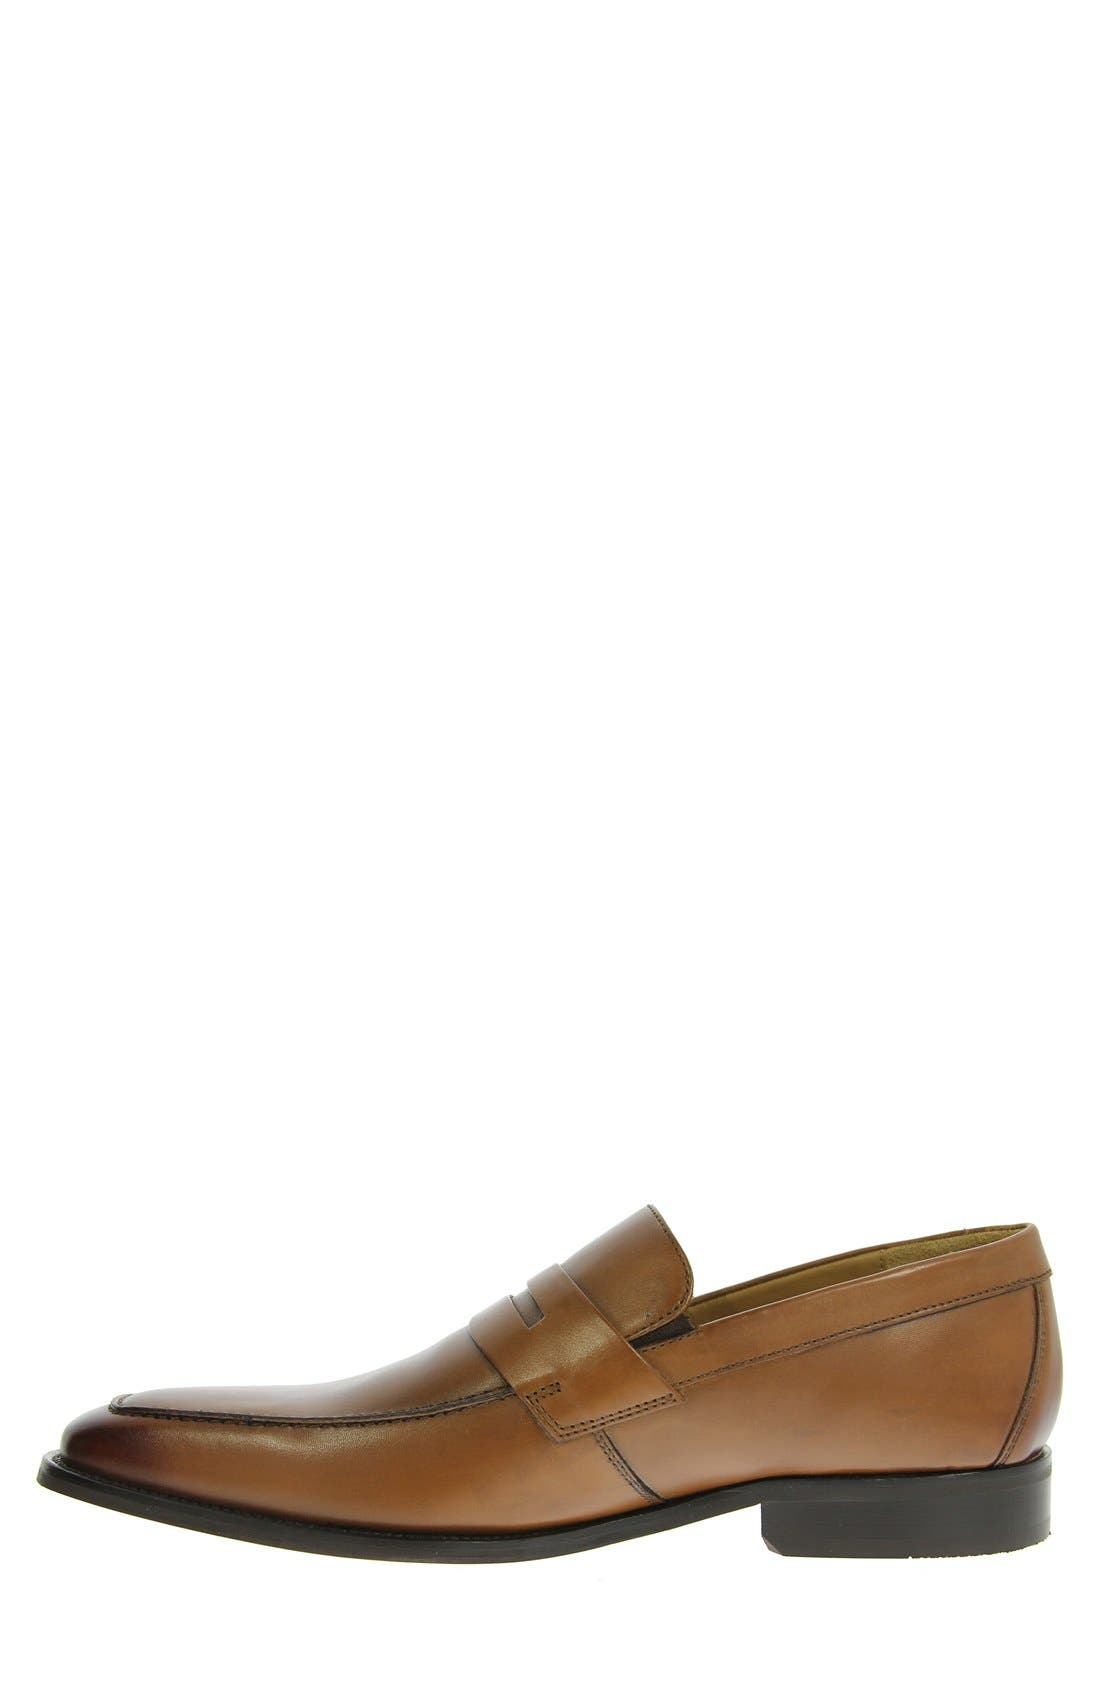 Alternate Image 2  - Florsheim 'Sabato' Penny Loafer (Men)